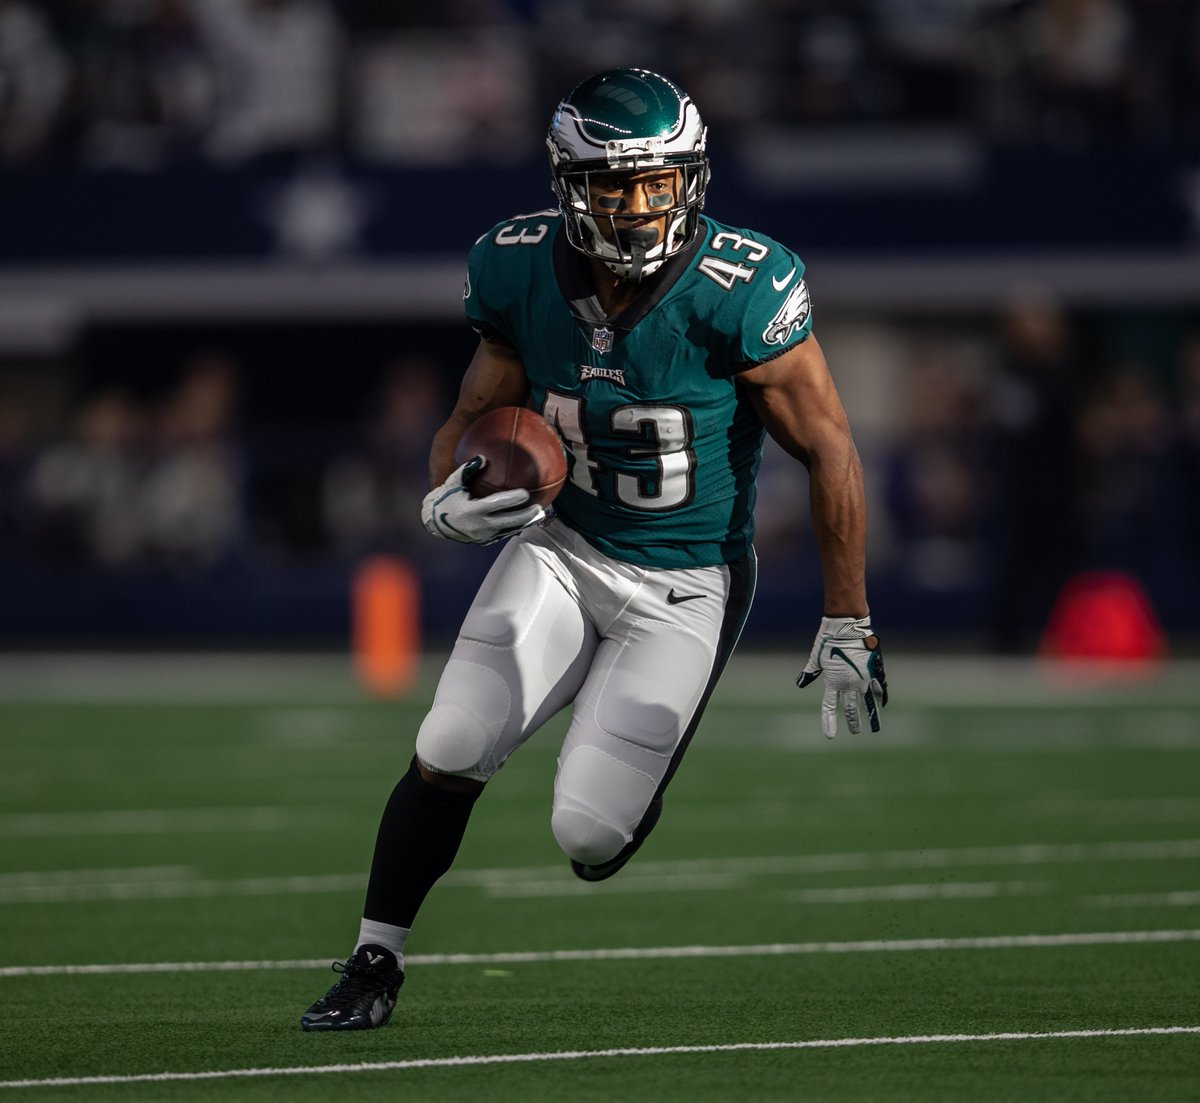 For those keeping track at home: In addition to leading all active players in career all-purpose yards, Sproles is the only player in NFL history with 30+ receiving TDs, 20+ rushing TDs, 1+ kickoff return TD, and 1+ punt return TD.  #FlyEaglesFly <br>http://pic.twitter.com/Grwc6MTaZt